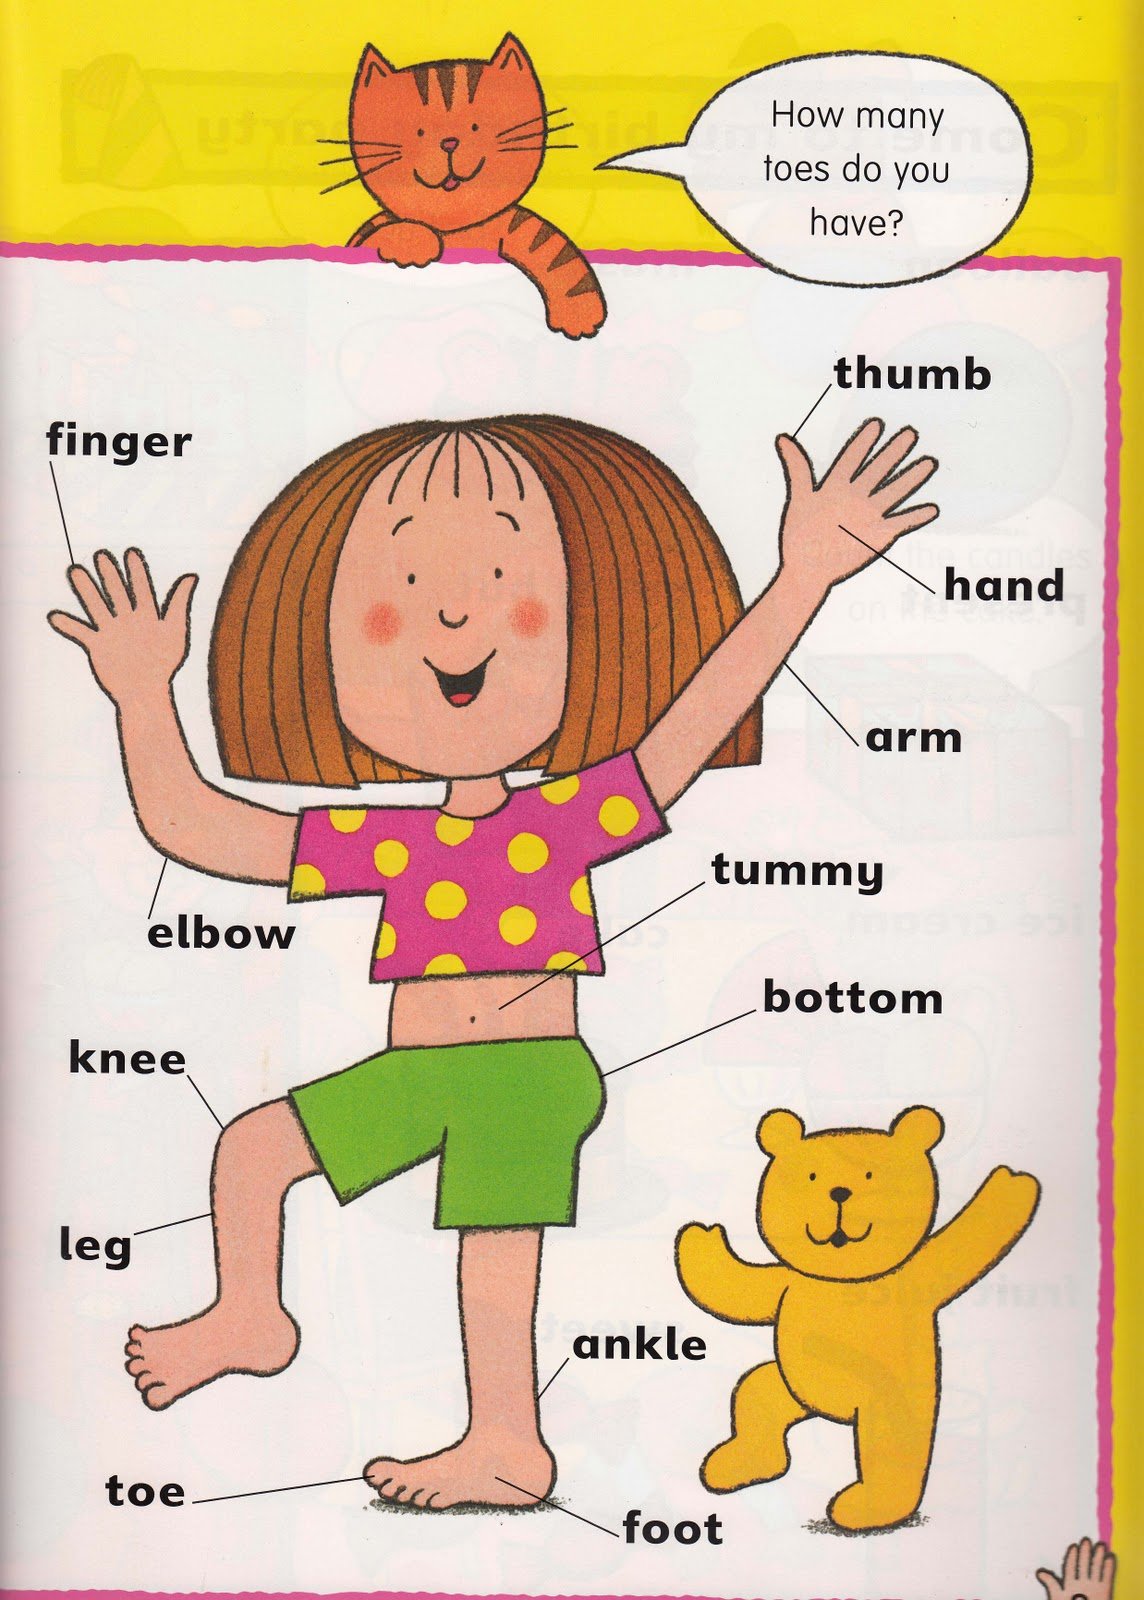 Body Parts En Ingles Y Espanol